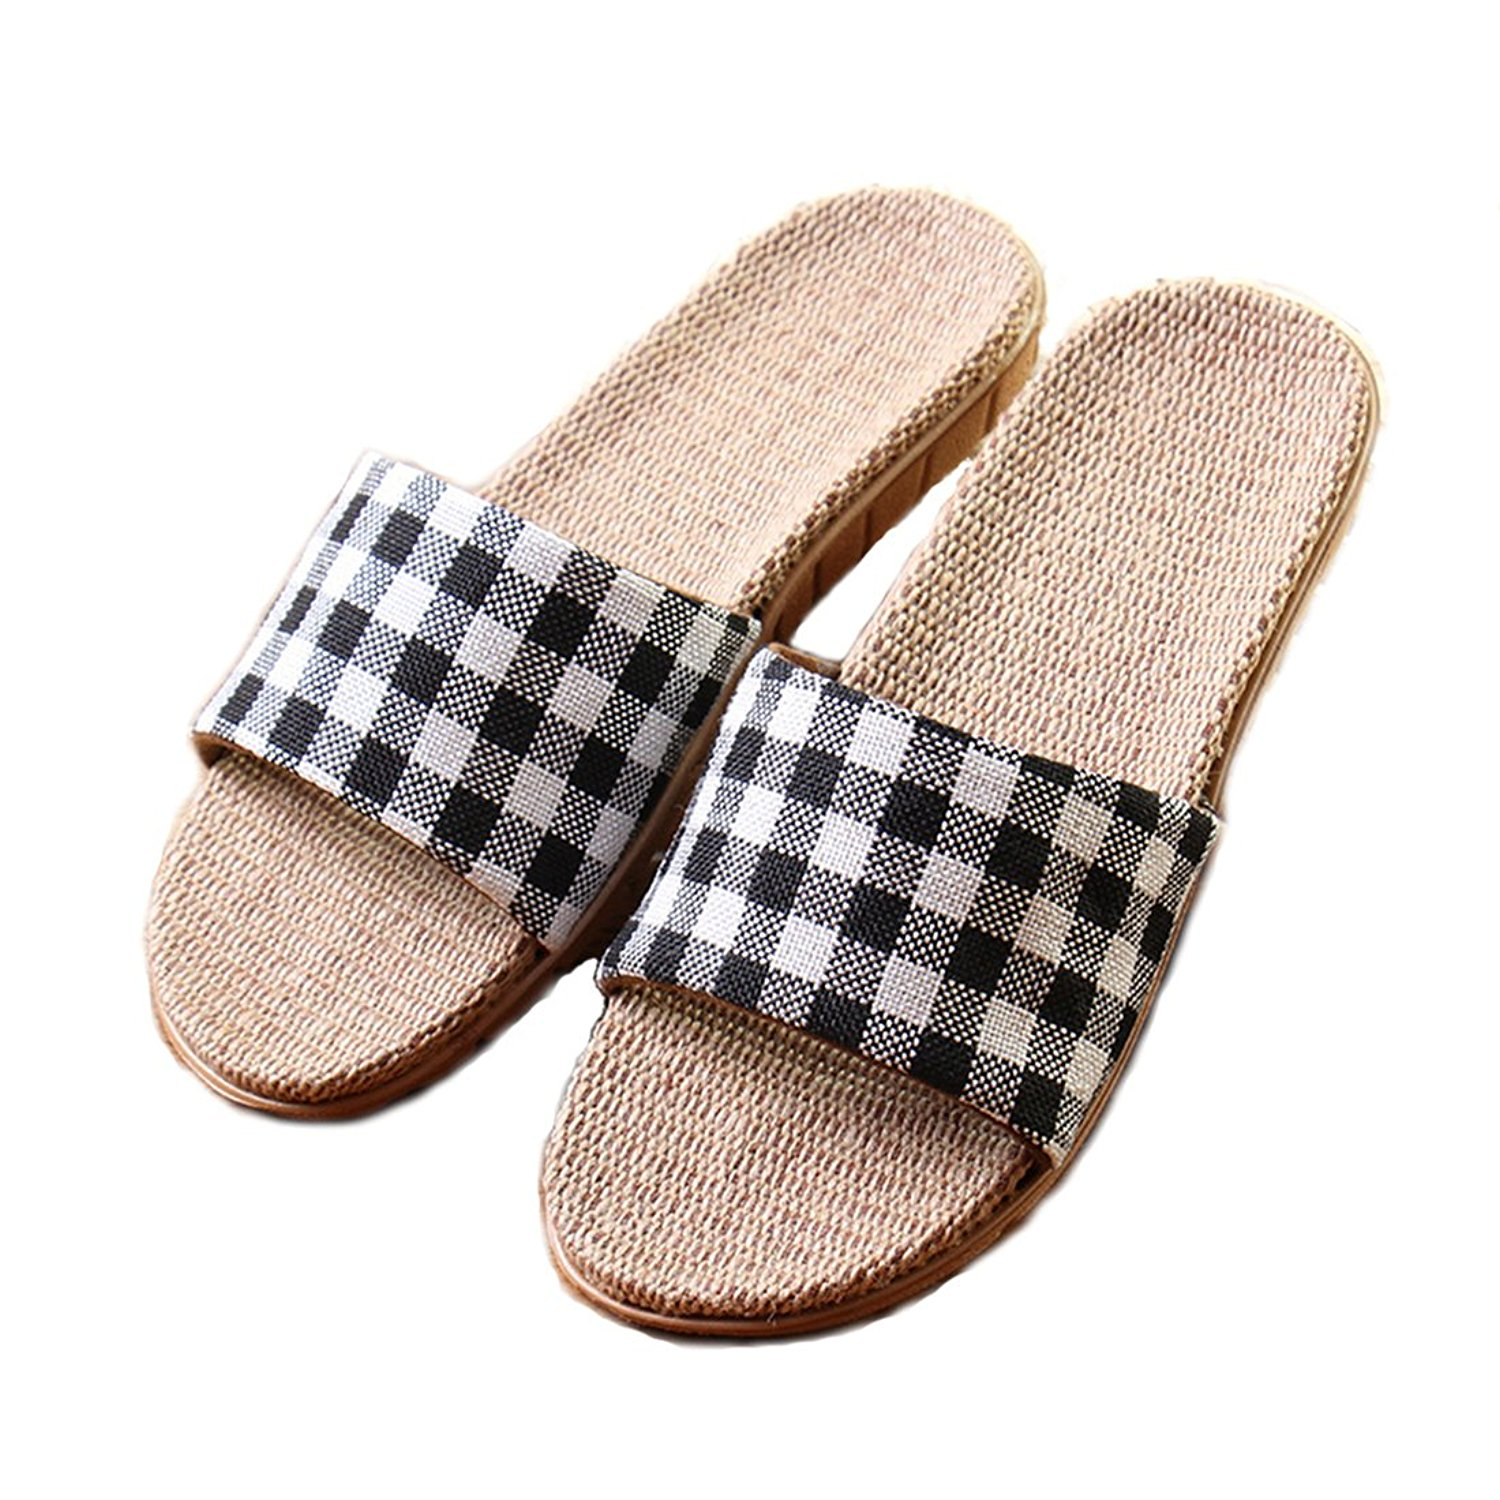 Oyangs Slippers Men,Unisex Slippers,Sandals,Waterproof Slippers,Indoor Slippers,House Slippers,Women Bathroom Shoes Slippers S168